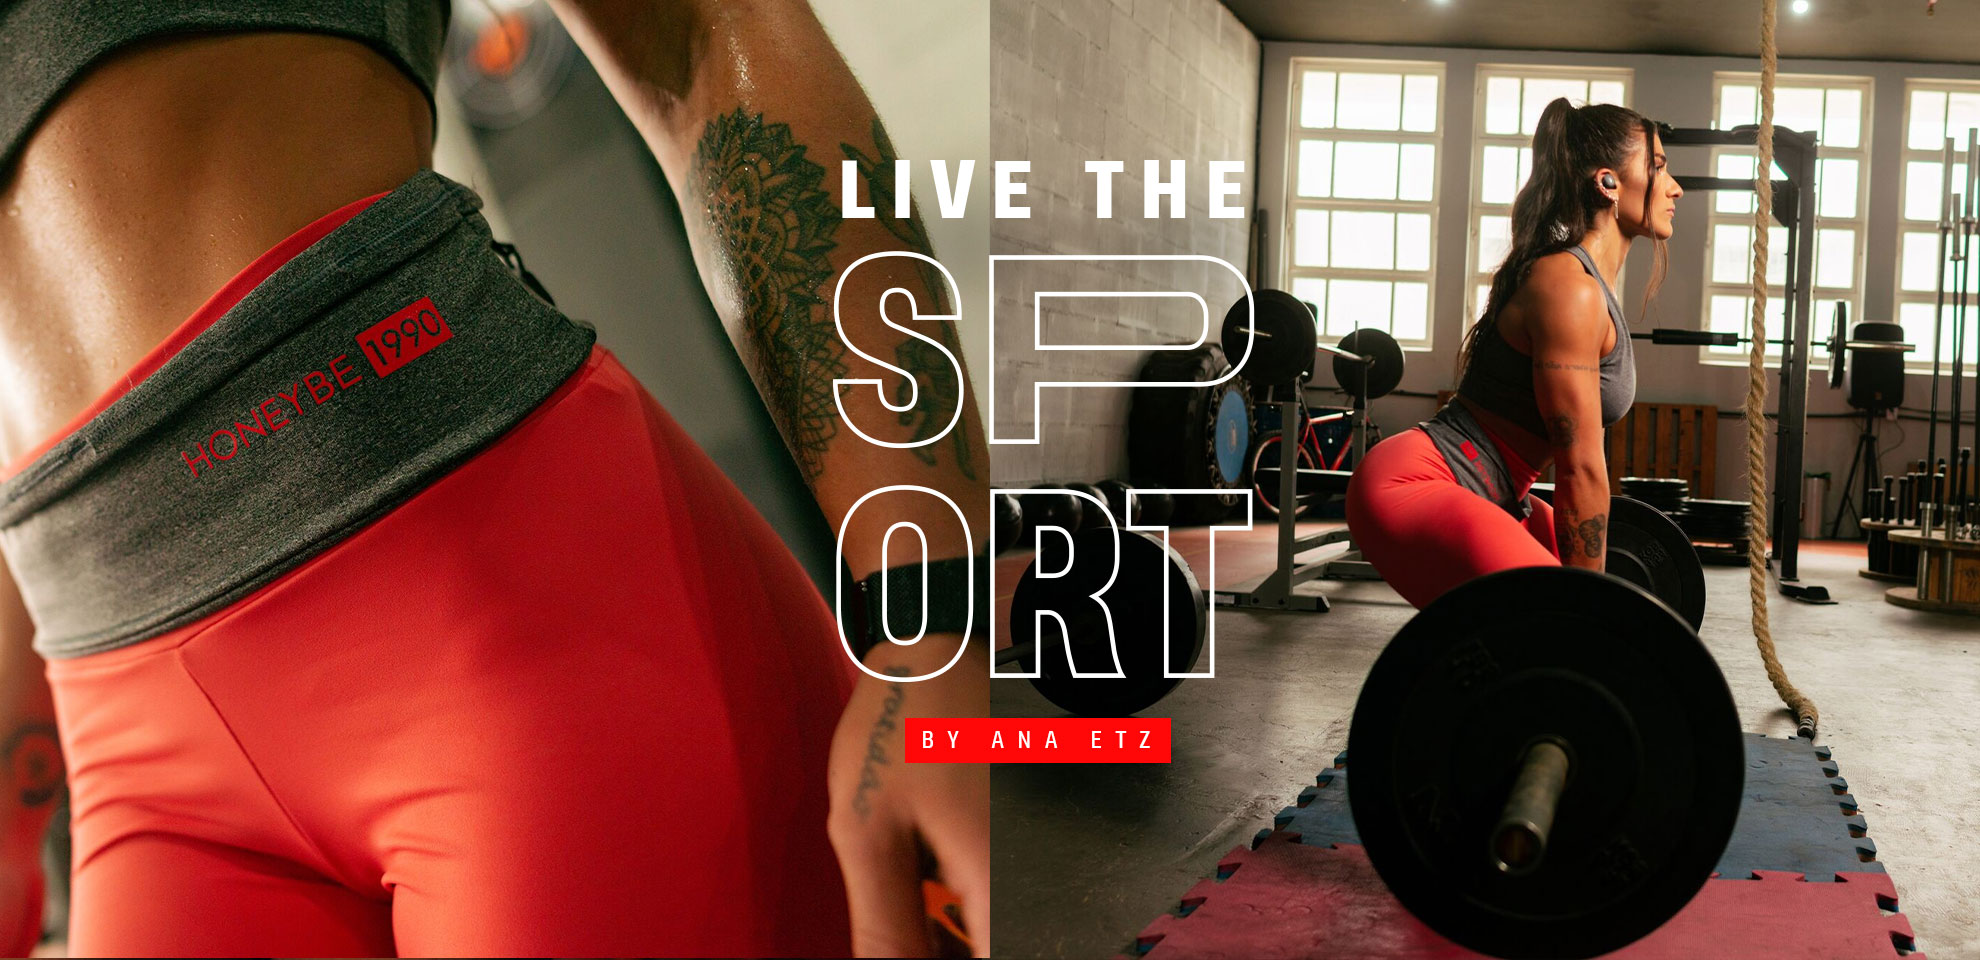 Live The Sport